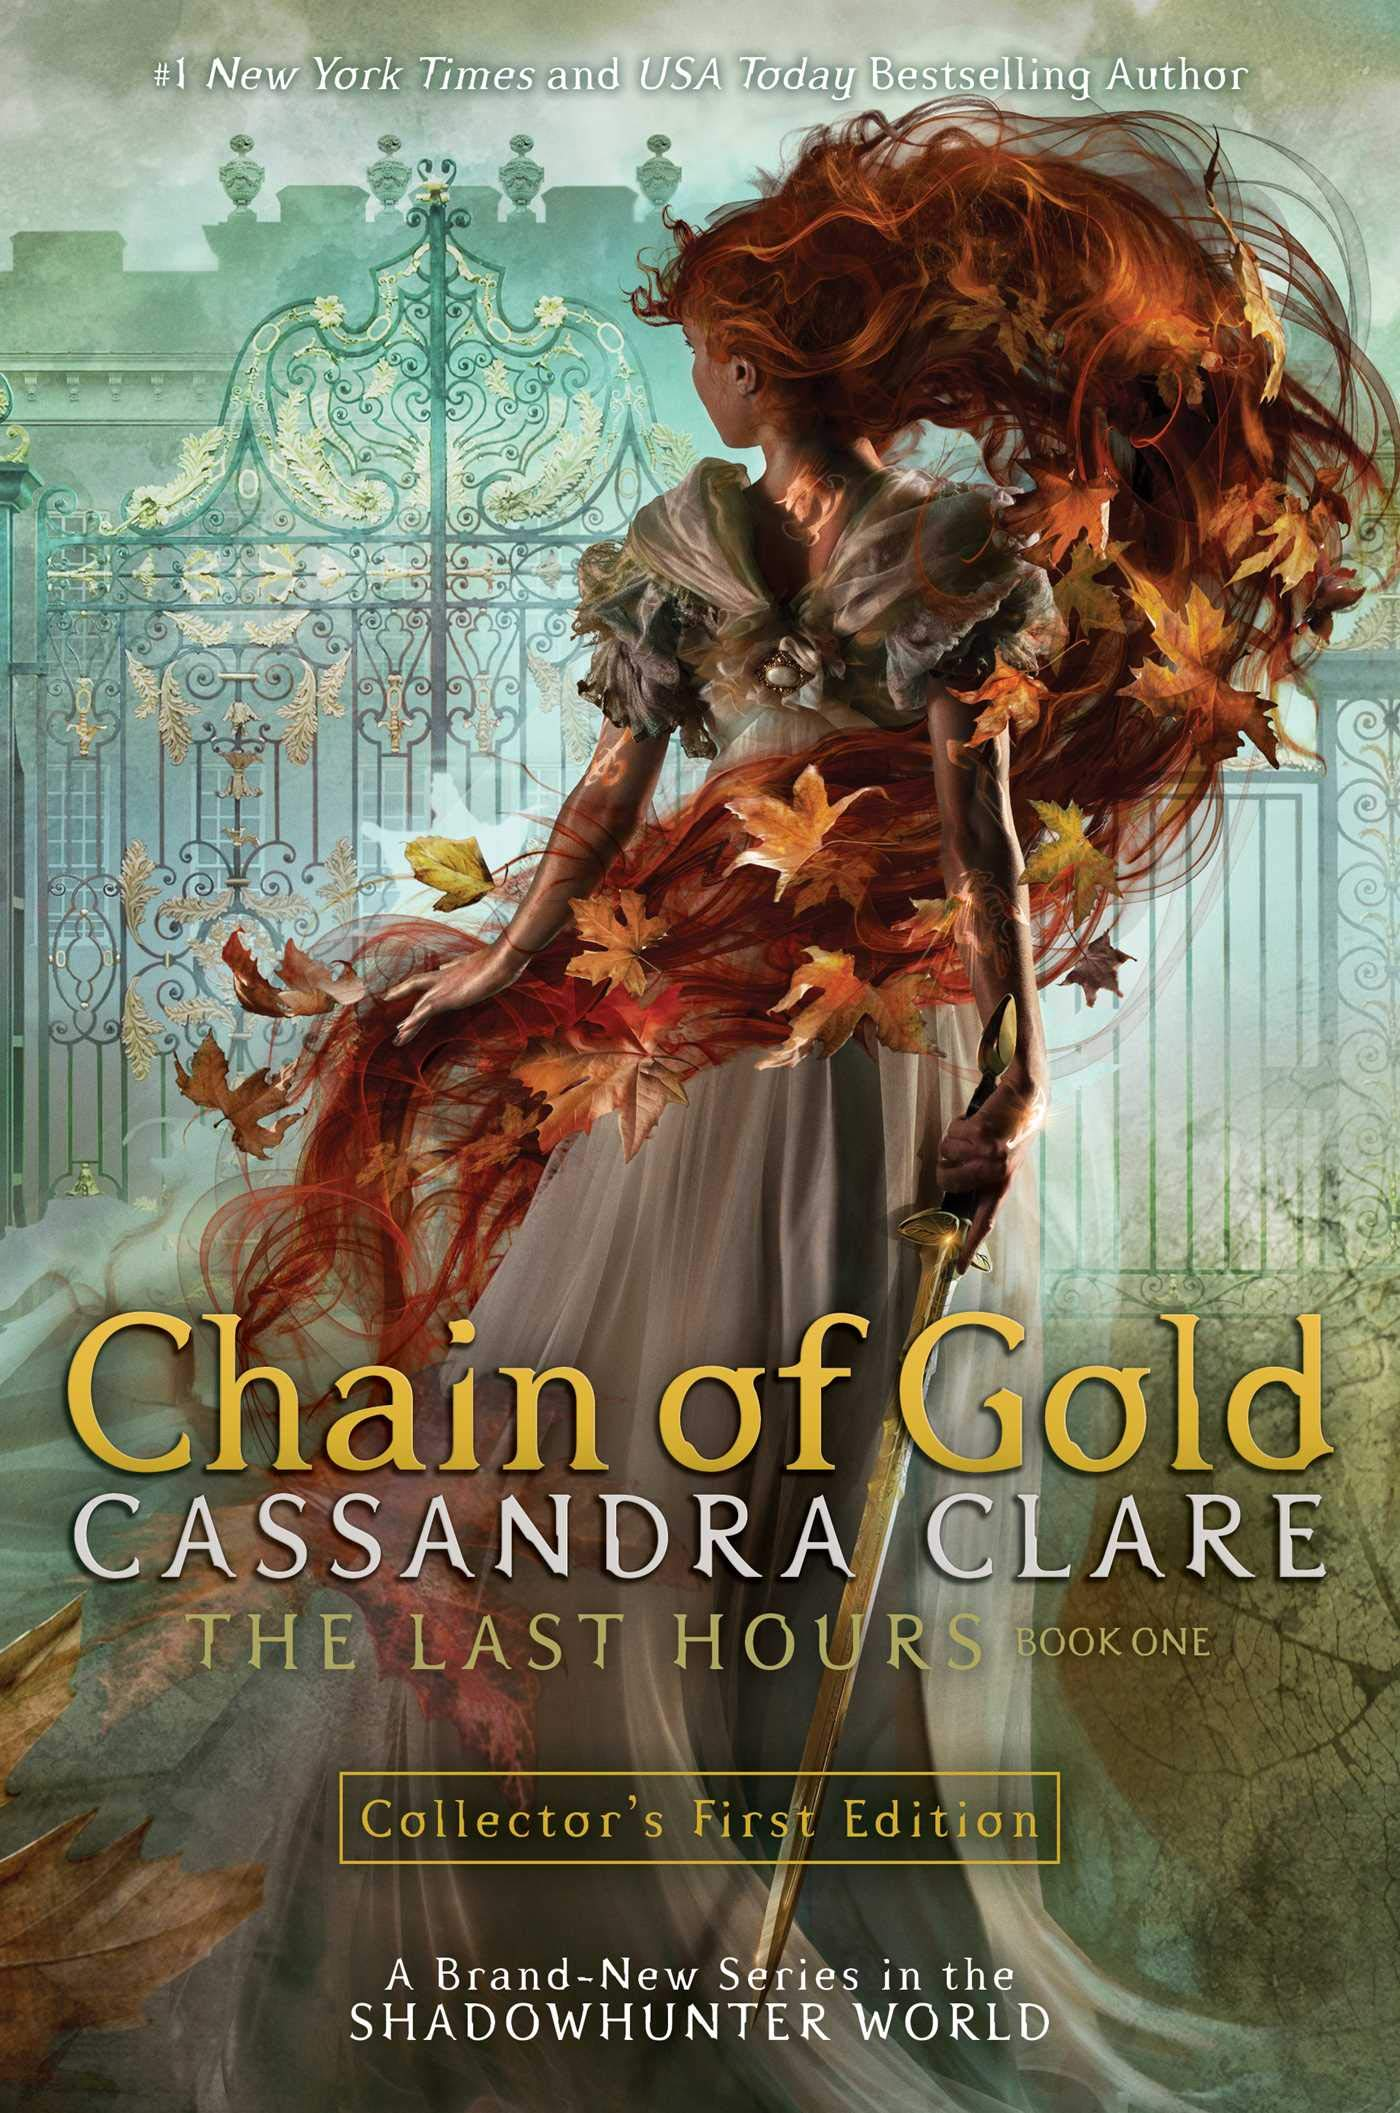 Image result for cassandra clare chain of gold